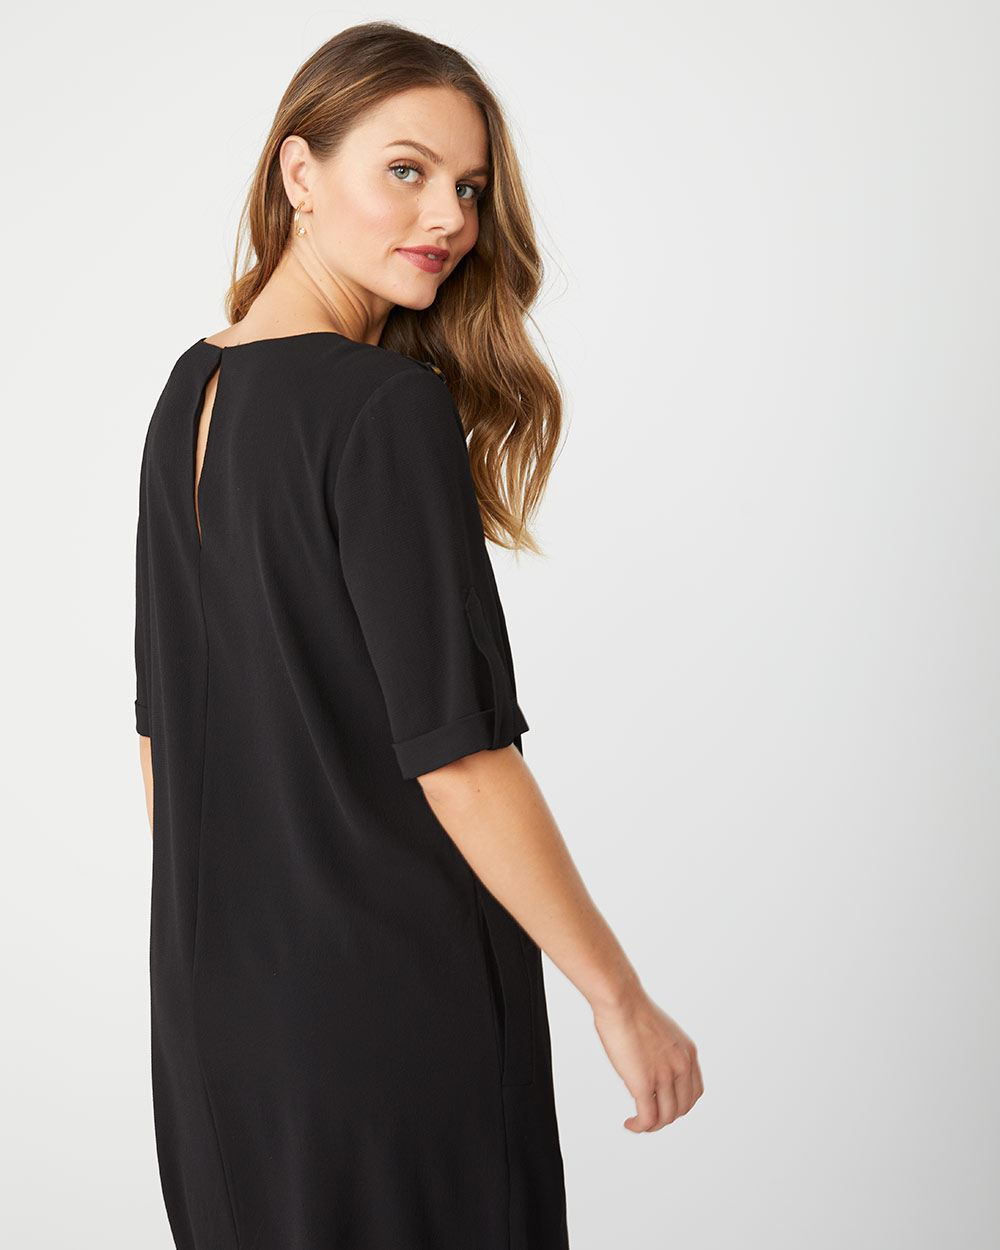 Short sleeve shift dress with button details